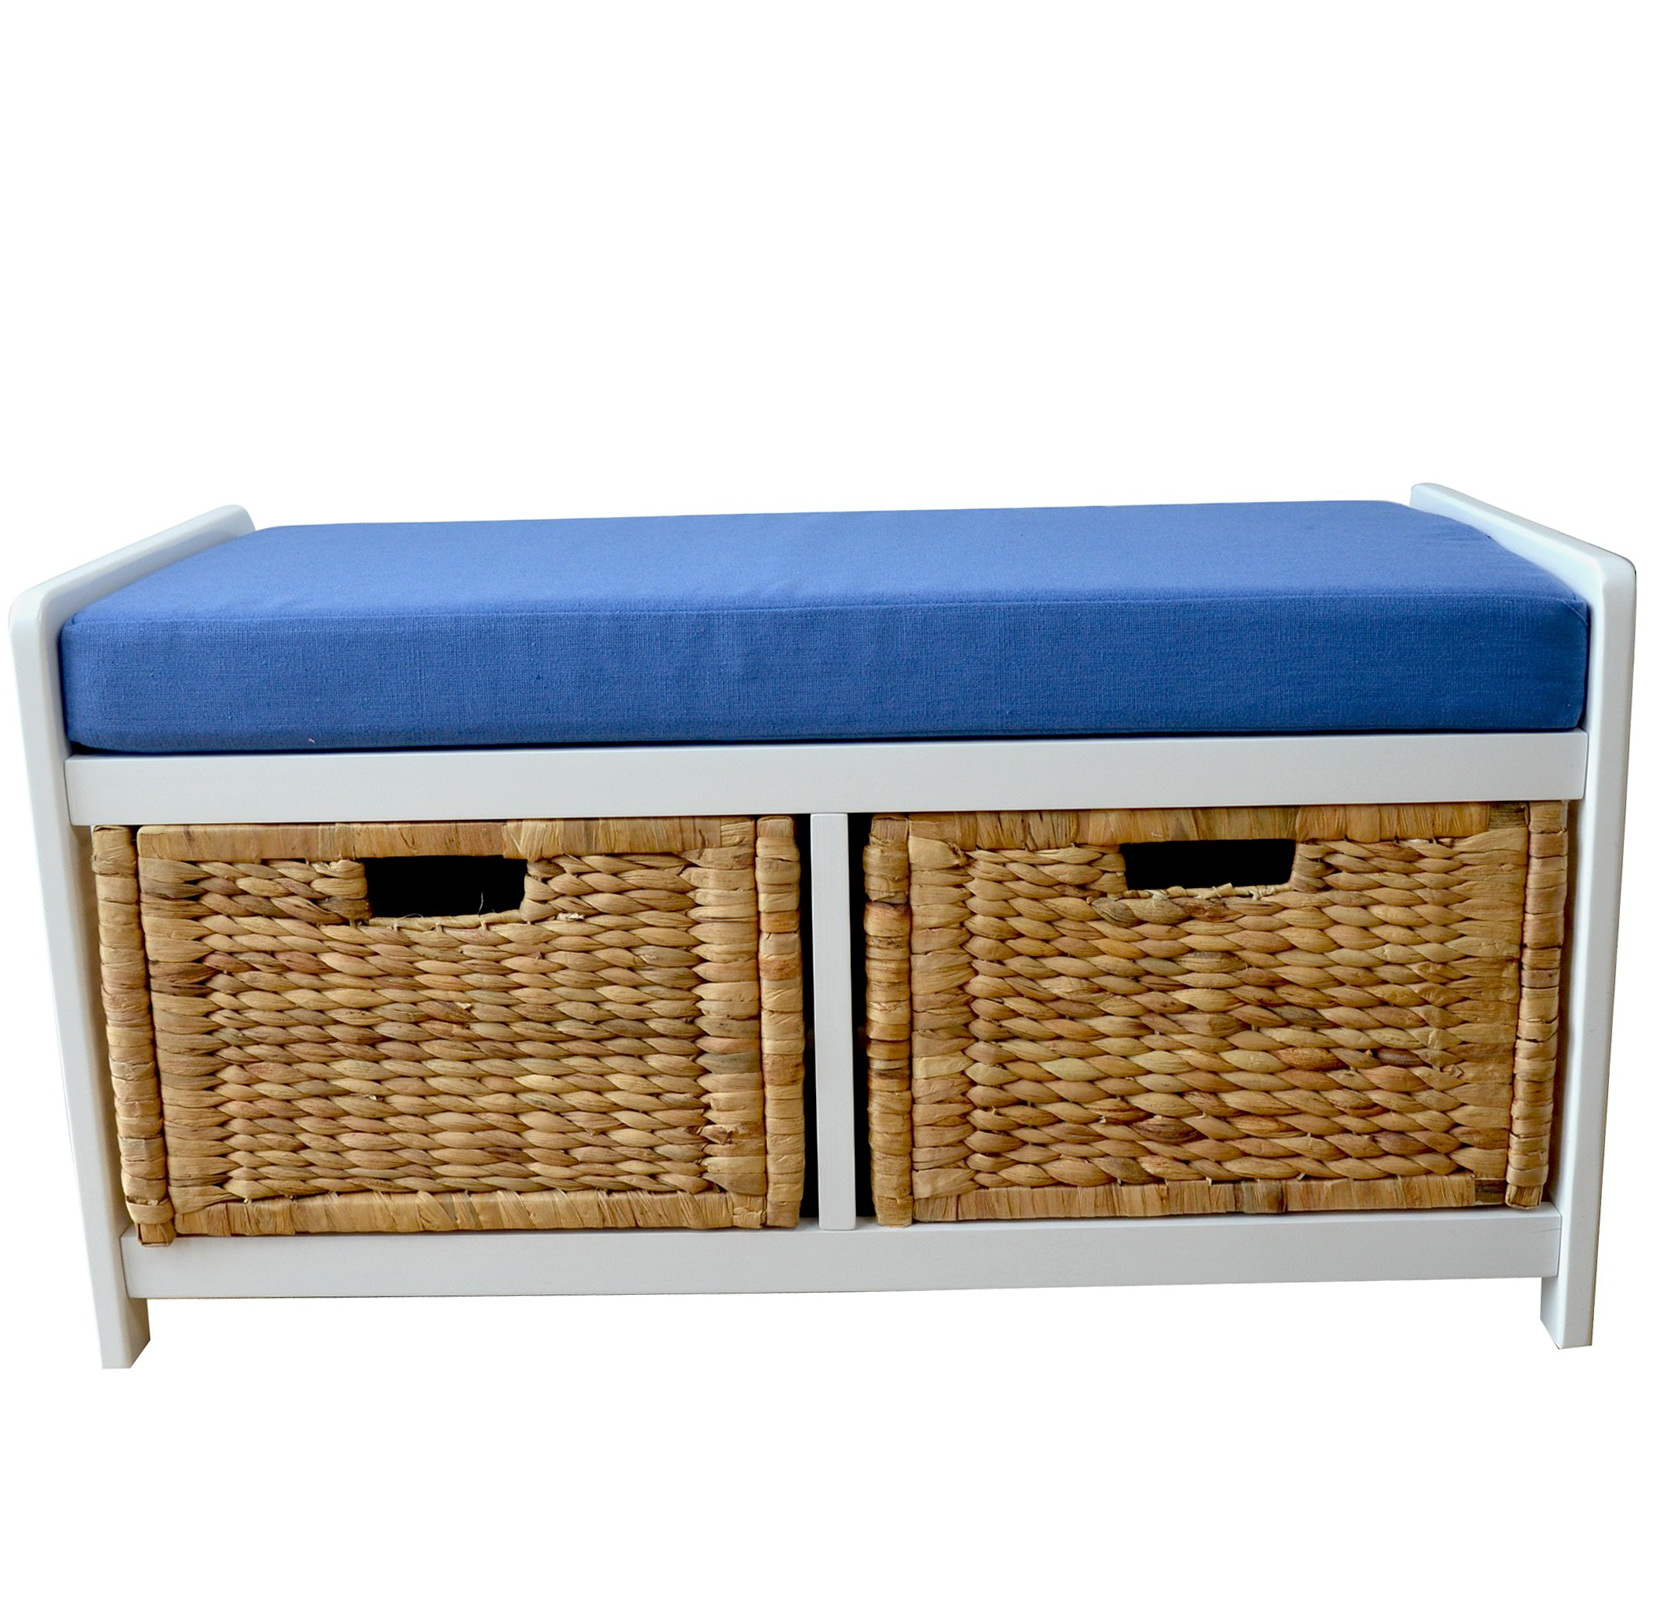 Storage bench with baskets and cushion home design ideas Bench with baskets